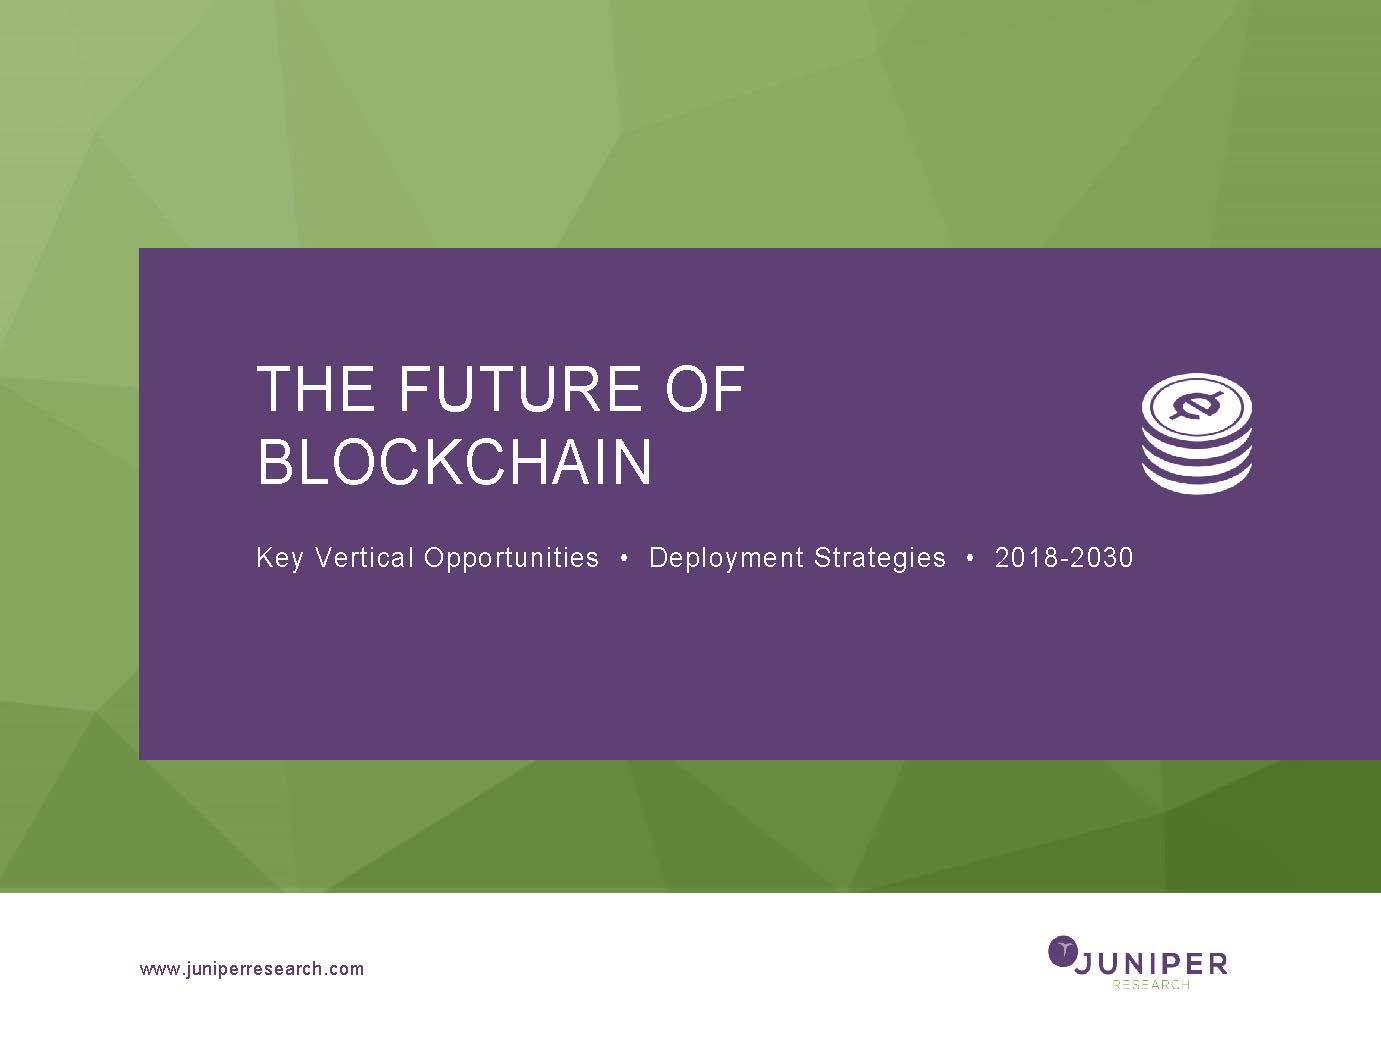 The Future of Blockchain - Deep Dive Data & Forecasting 2018-2030